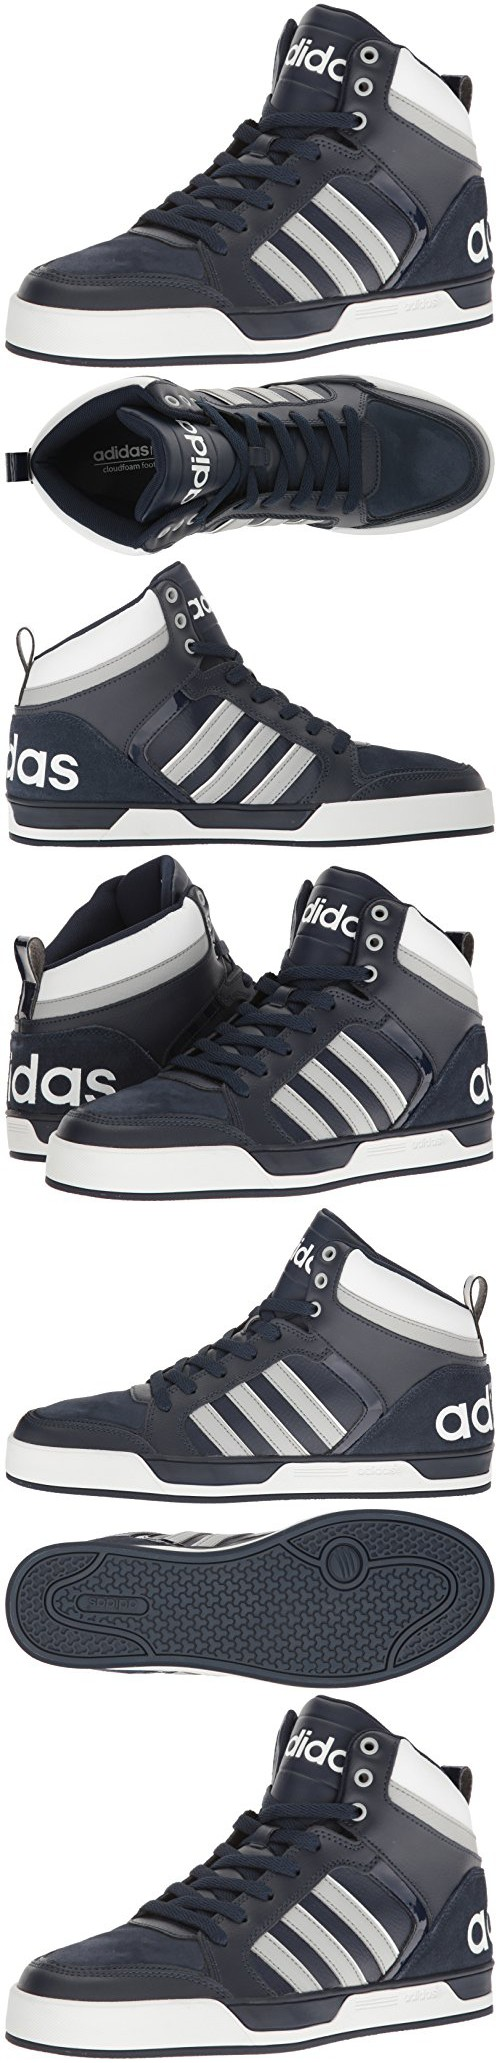 10.5 NEW ADIDAS NEO RALEIGH 9TIS MID SHOES Black White Gray